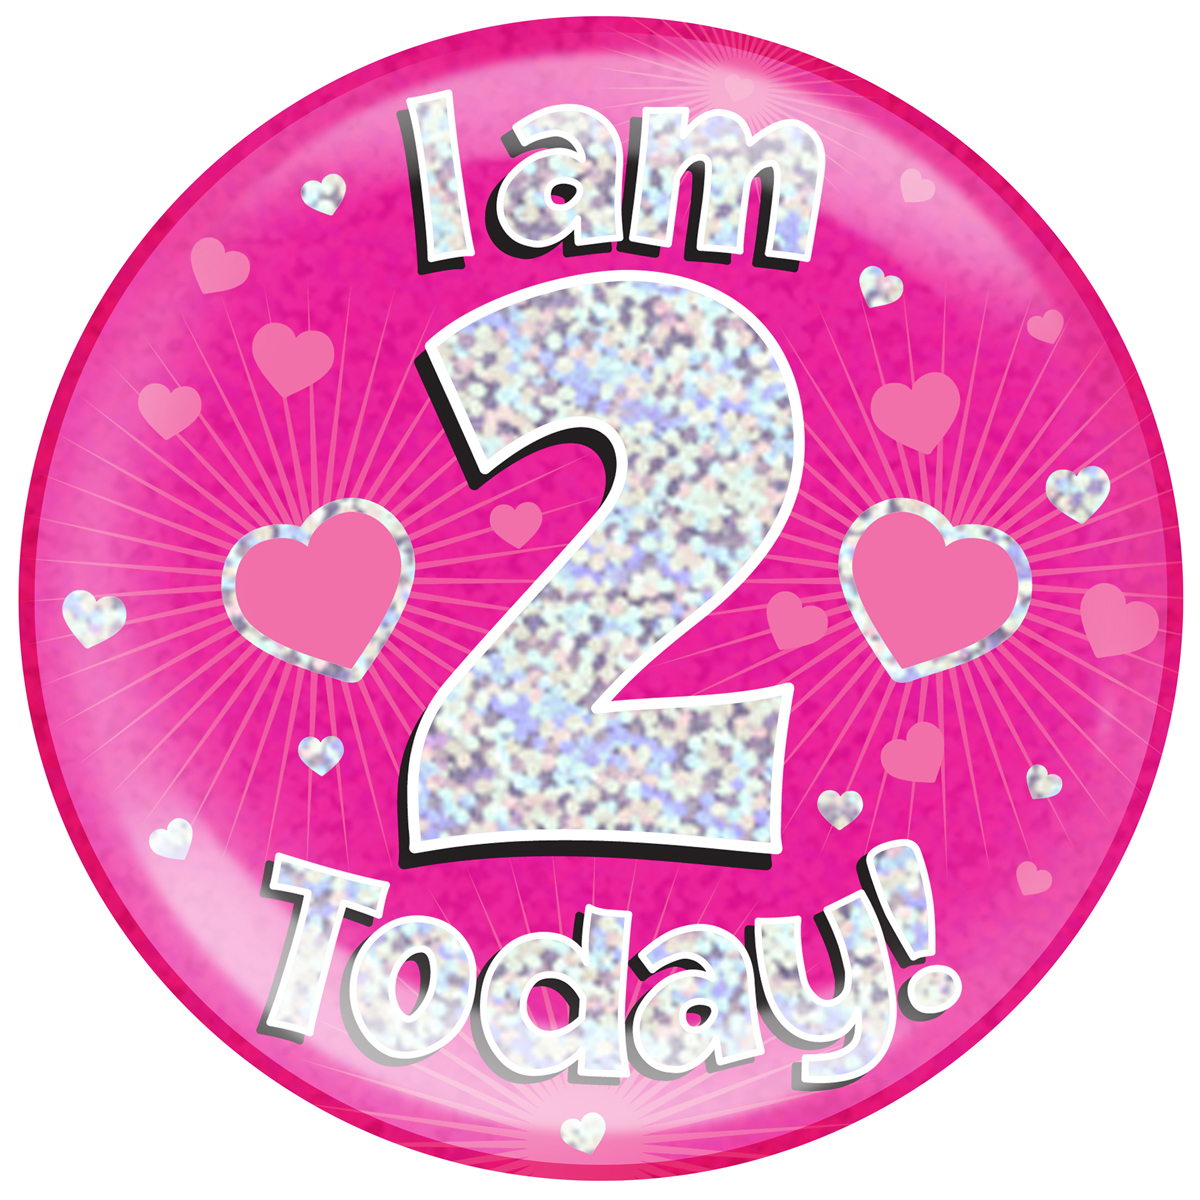 Home Birthday Party Decorations 2nd Birthday Pink Holographic Jumbo Badge Pageant Party